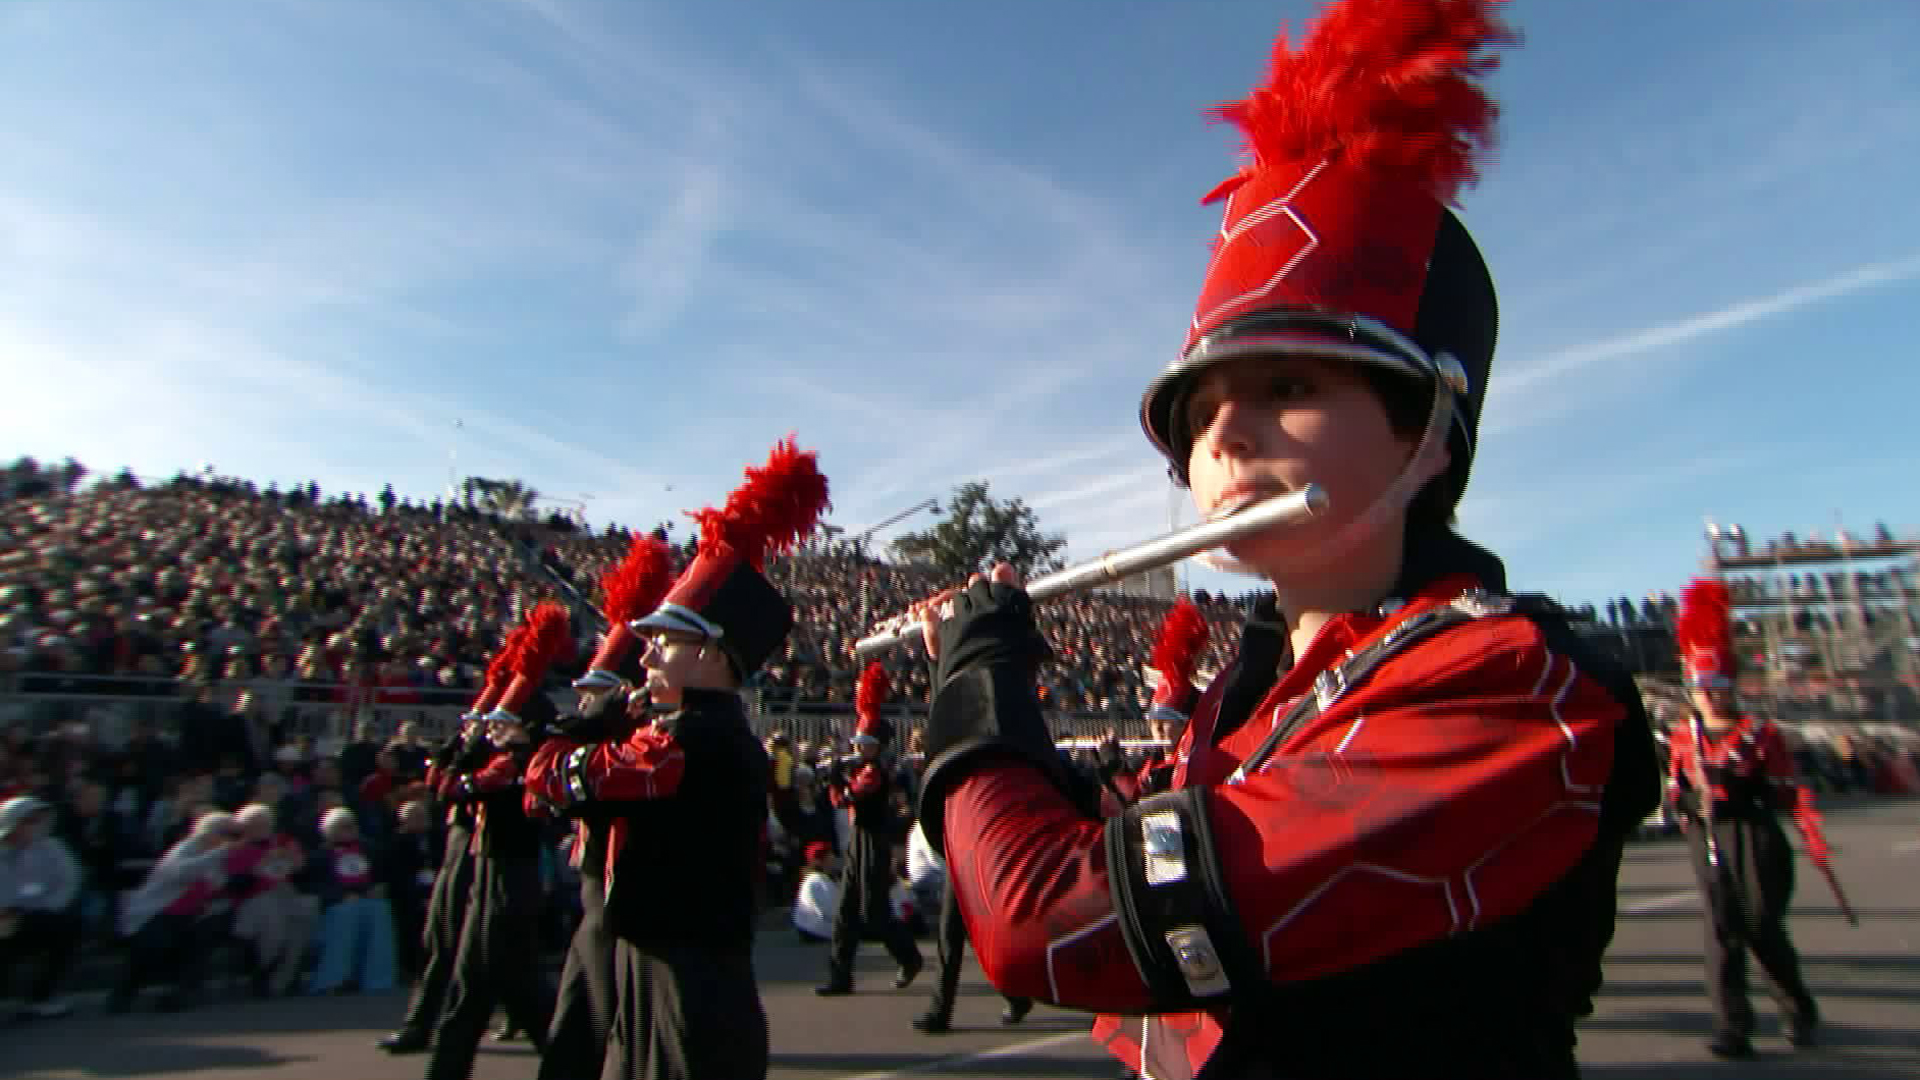 Spectators watch as the Baldwinsville marching band passes by during the Rose Parade on Jan. 1, 2020. (Credit: KTLA)